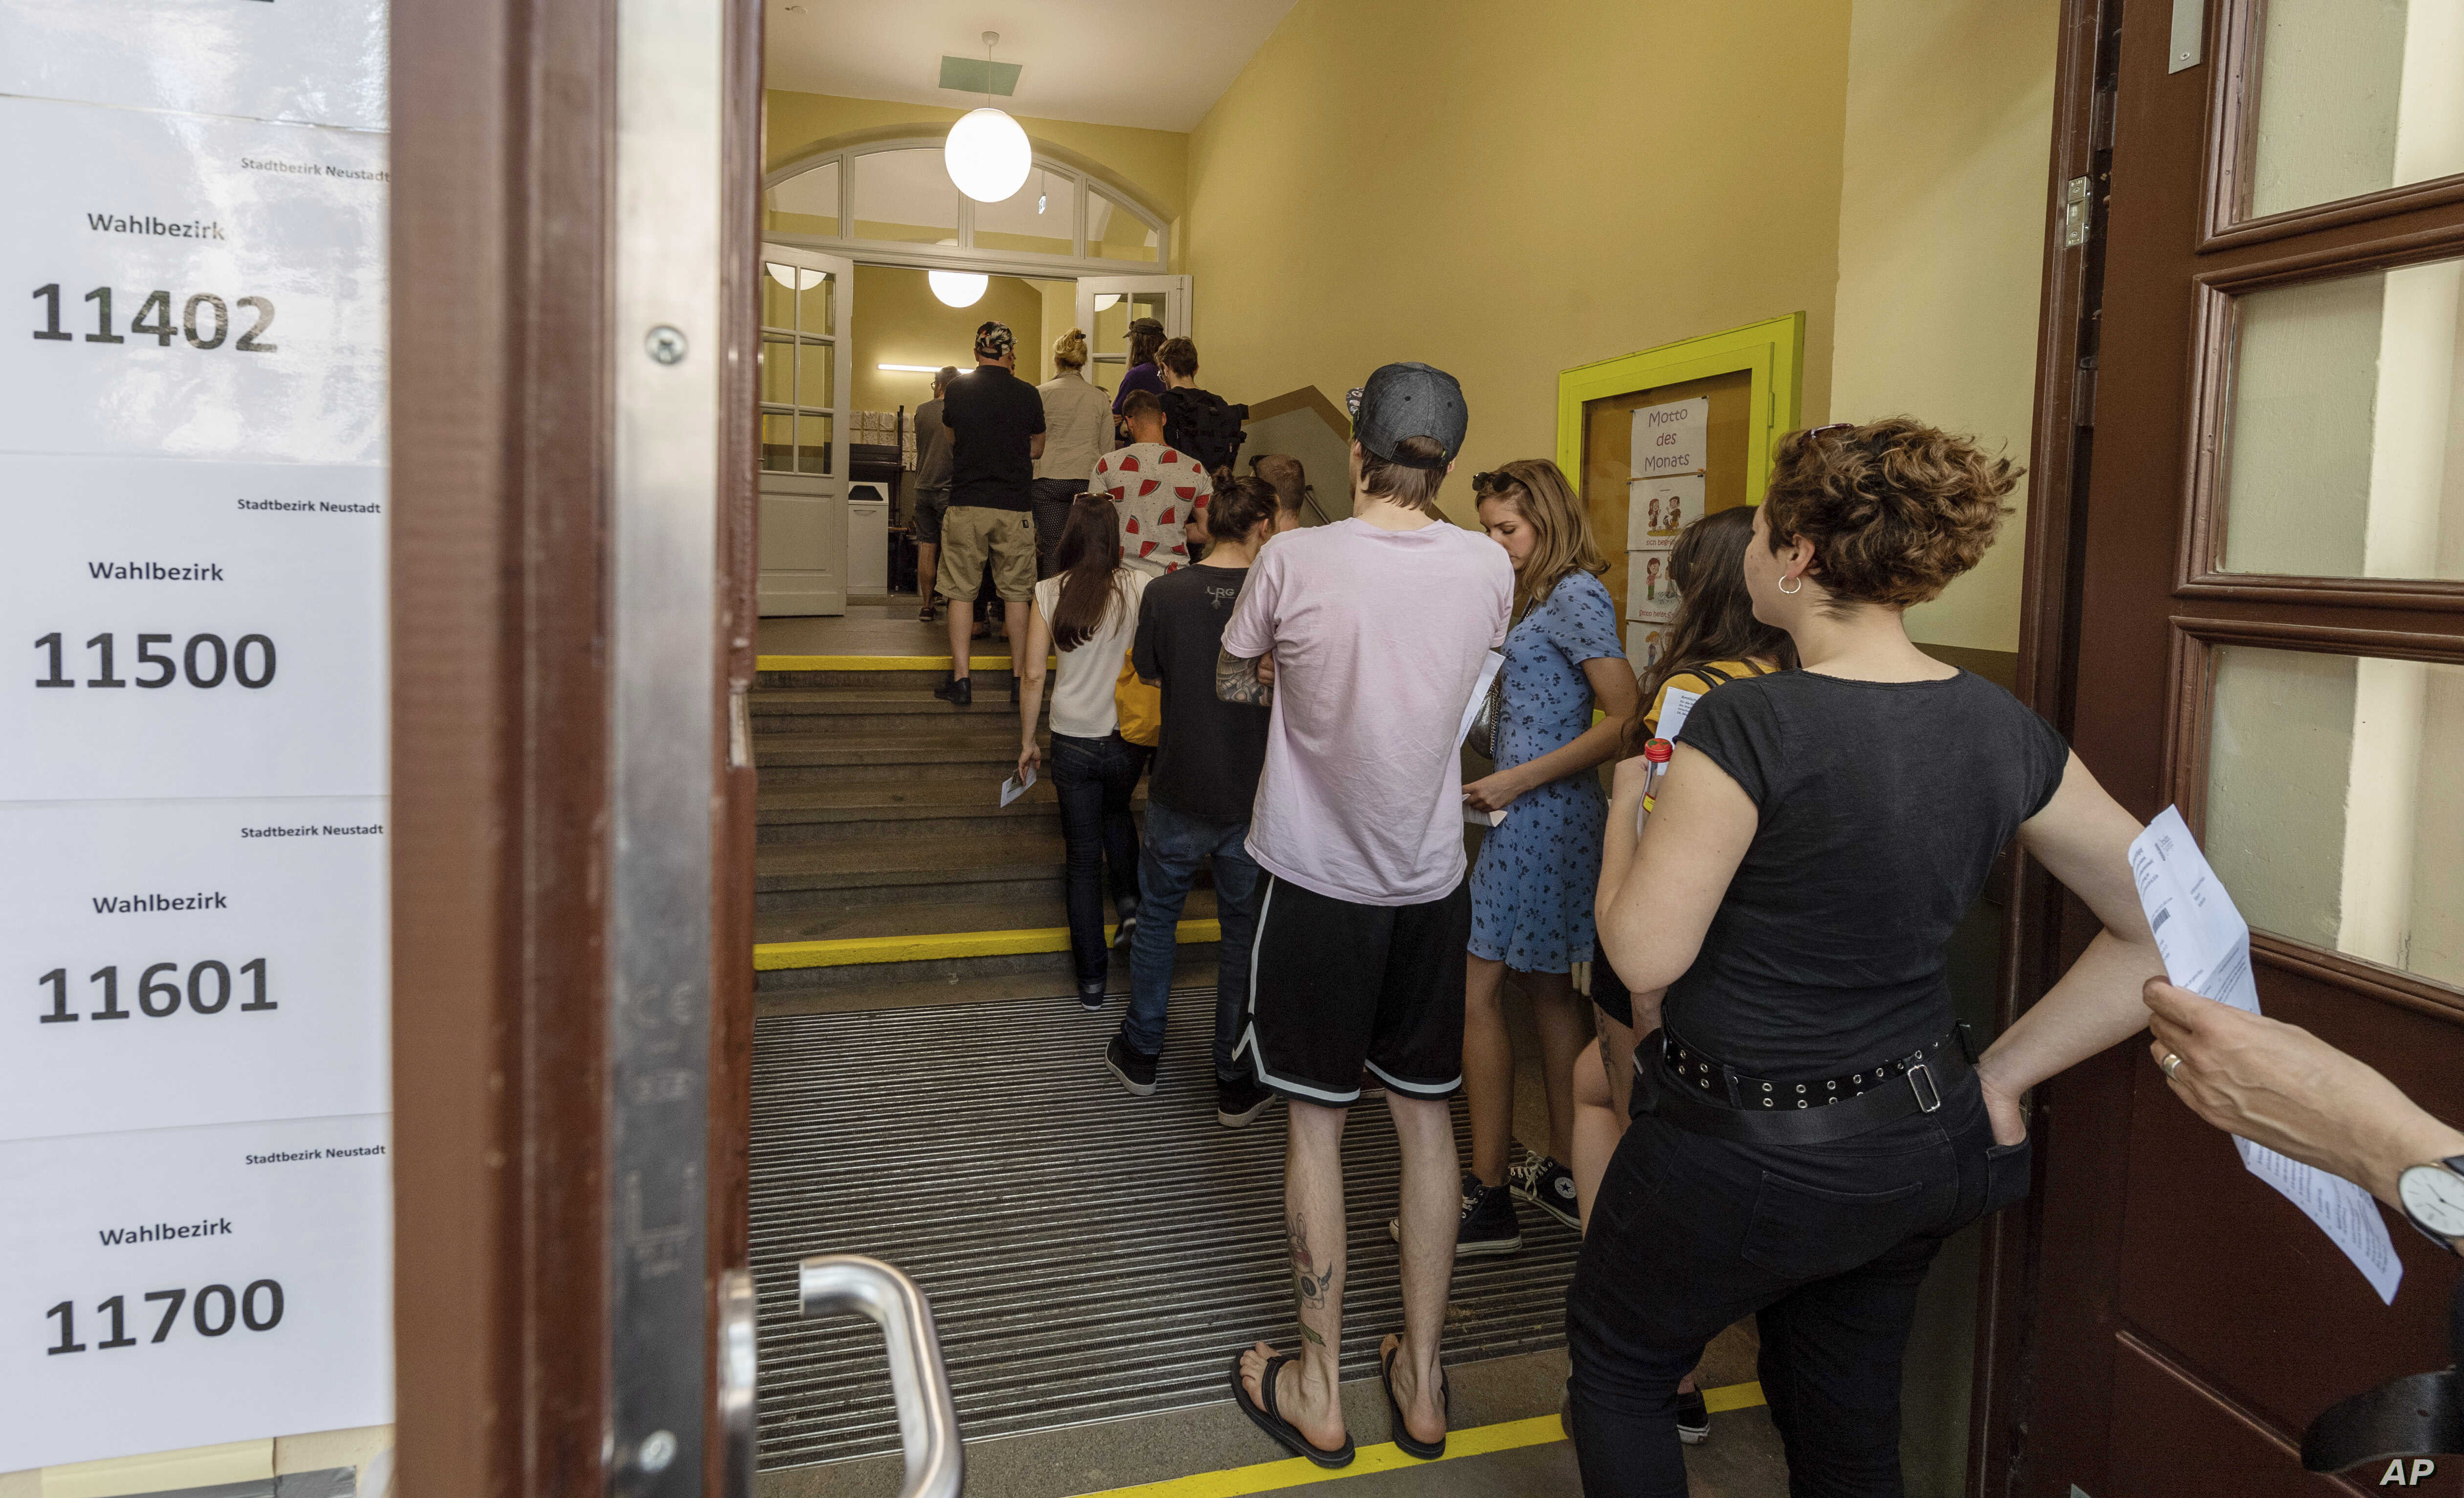 Voters line up at a polling station for European Parliament elections in Dresden, Germany, May 26, 2019.